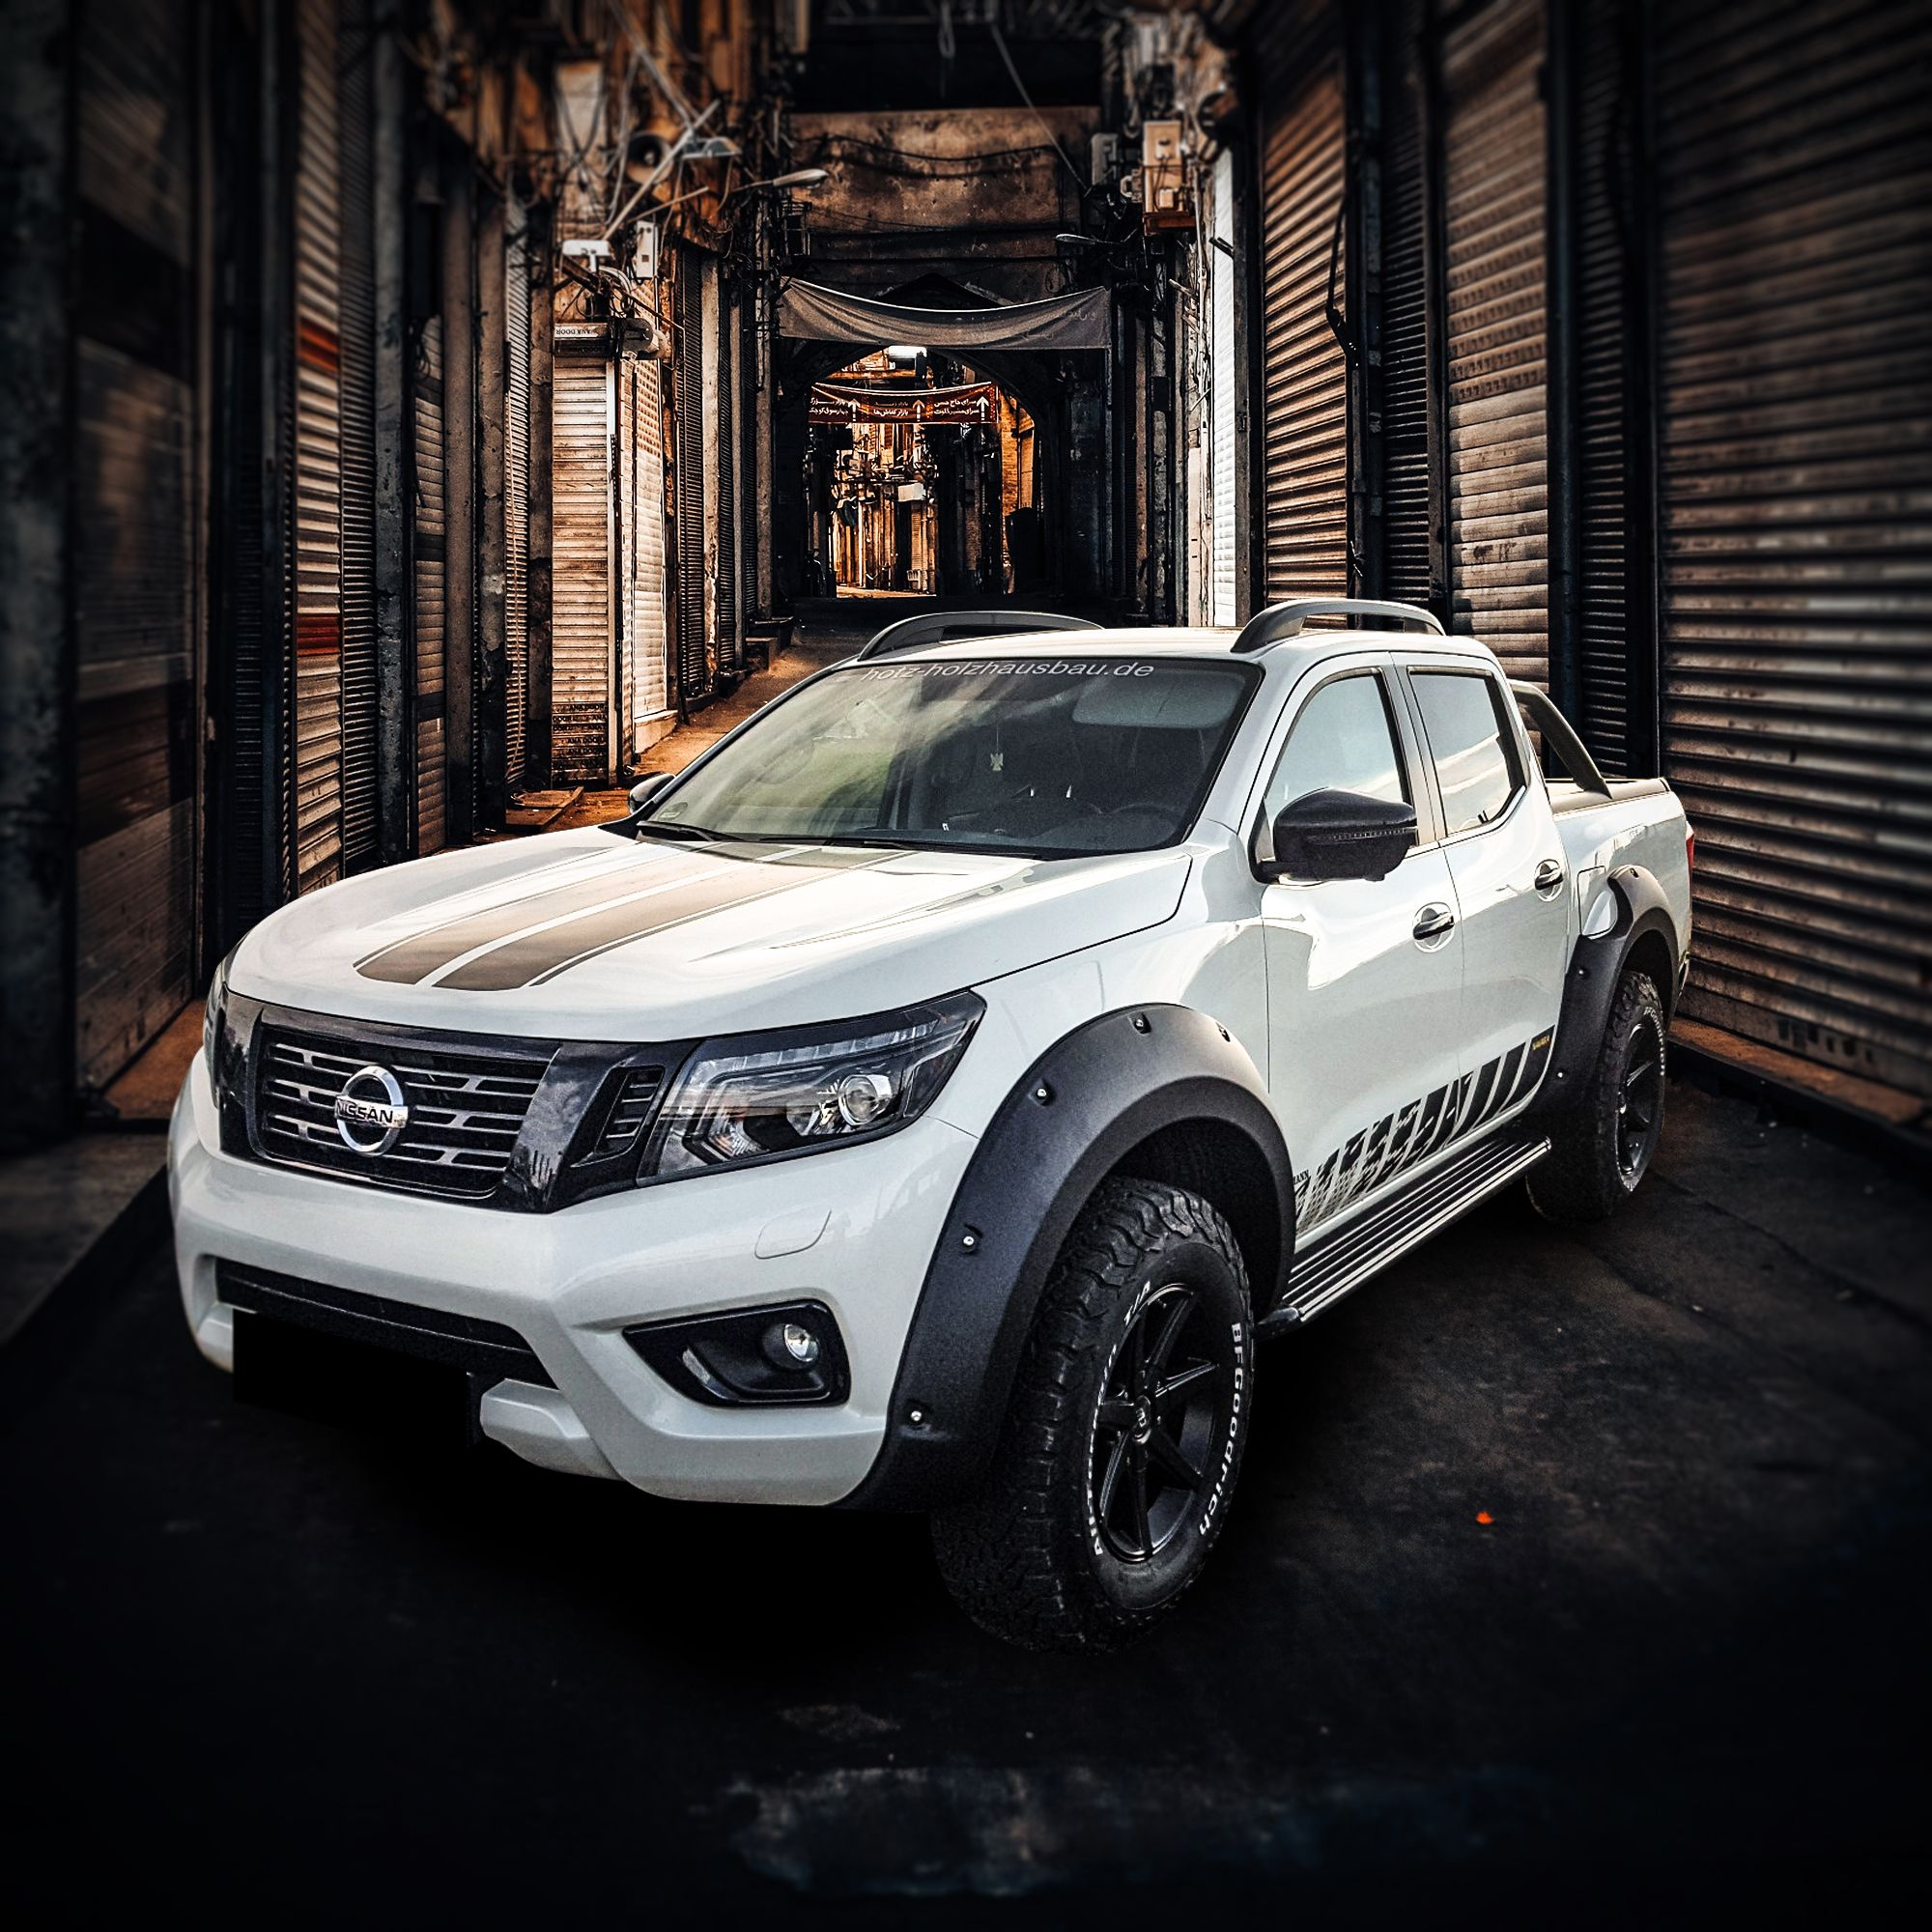 Nissan Beast Equiped With Germansell Fender Flares If Your Are Interested In Suitable Tuingparts For Styling Your Individua Nissan Navara Nissan Pick Up